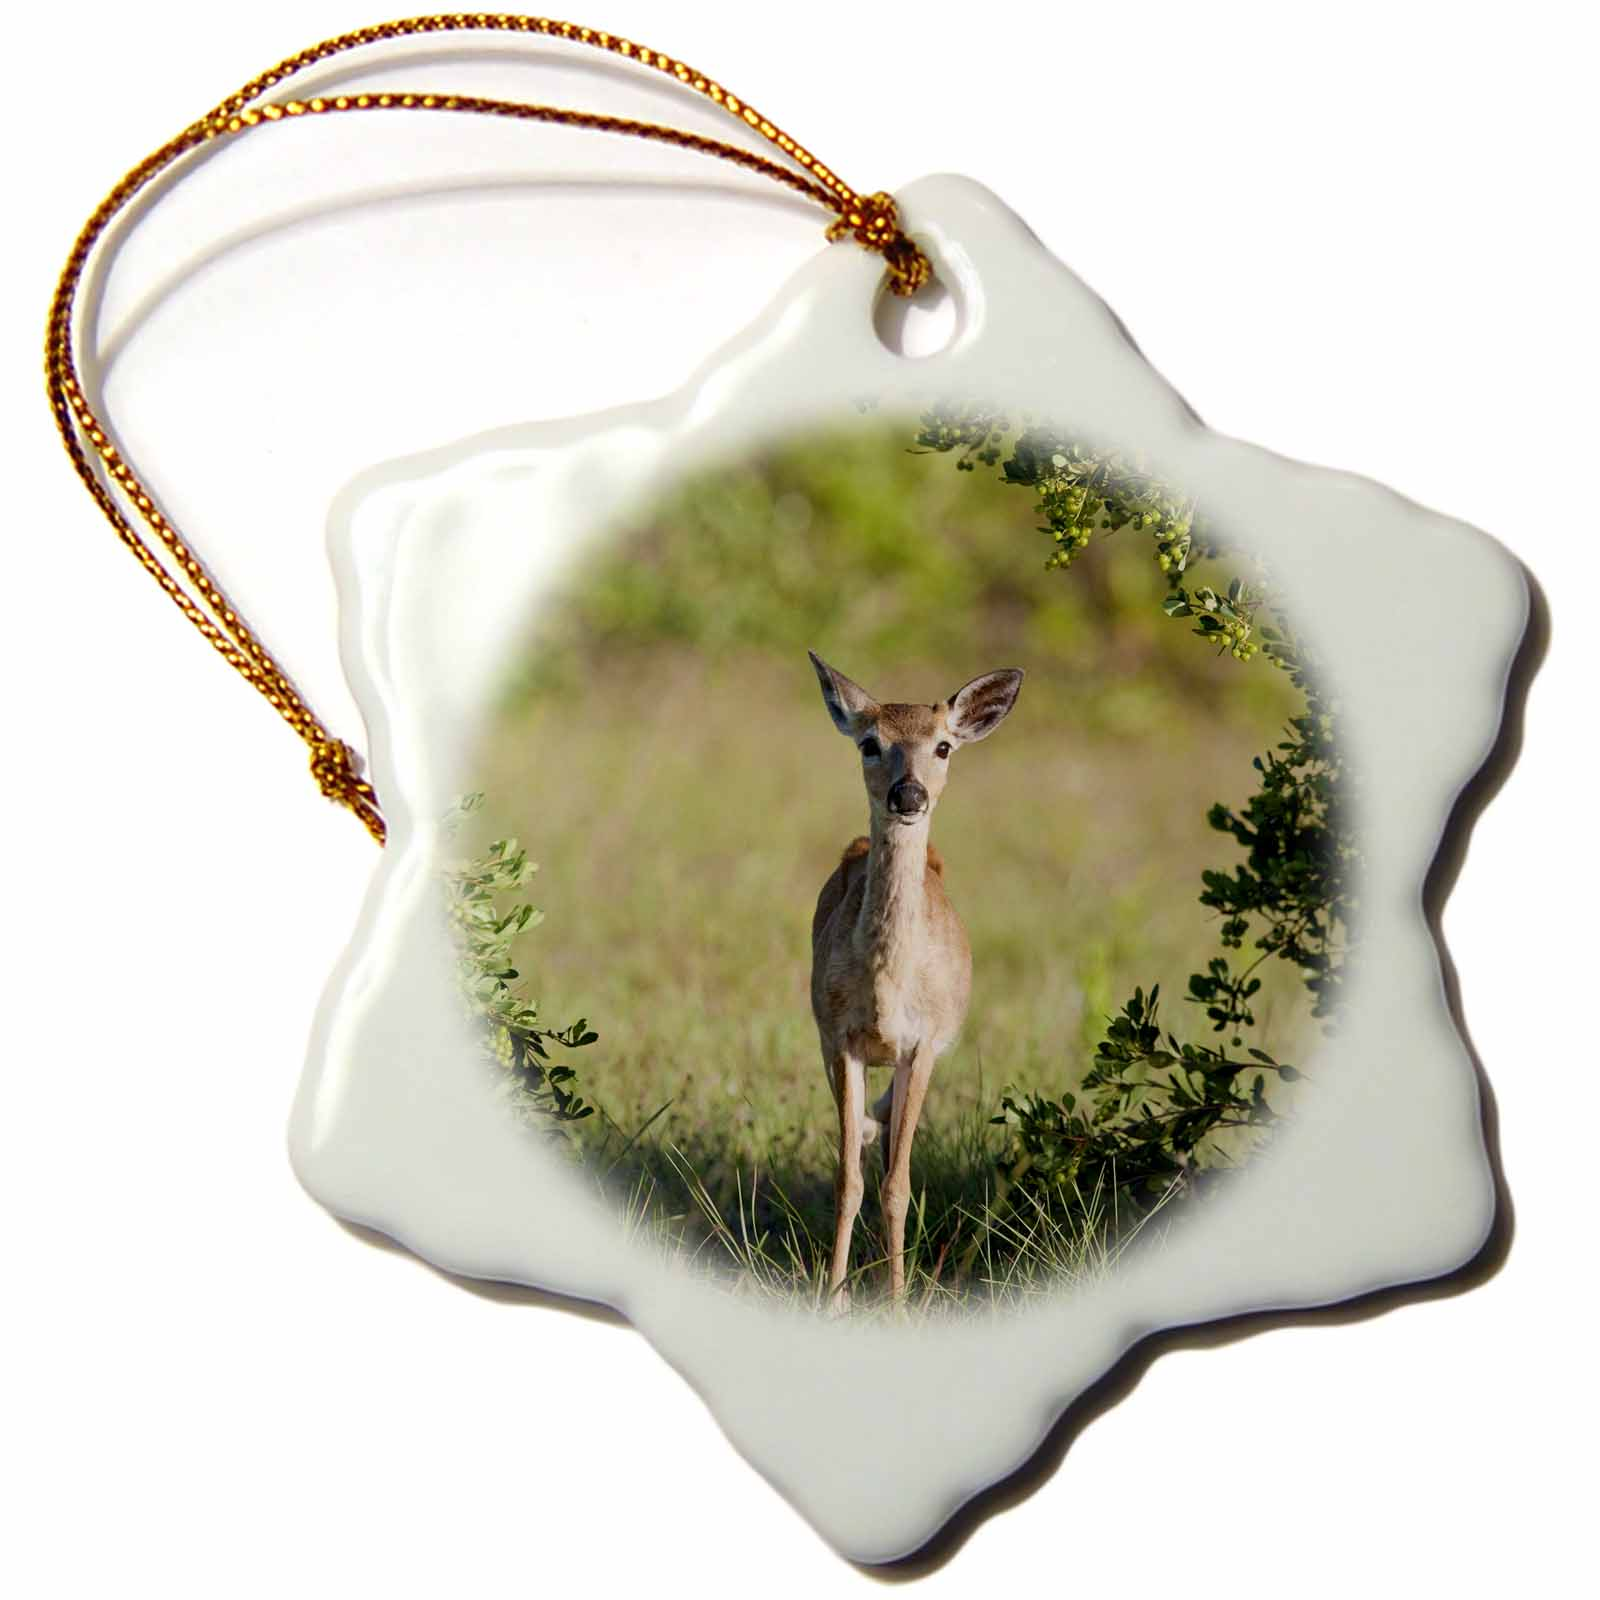 Image of 3dRose National Key Deer Refuge, Big Pine Island, Florida - US10 MPR0388 - Maresa Pryor, Snowflake Ornament, Porcelain, 3-inch